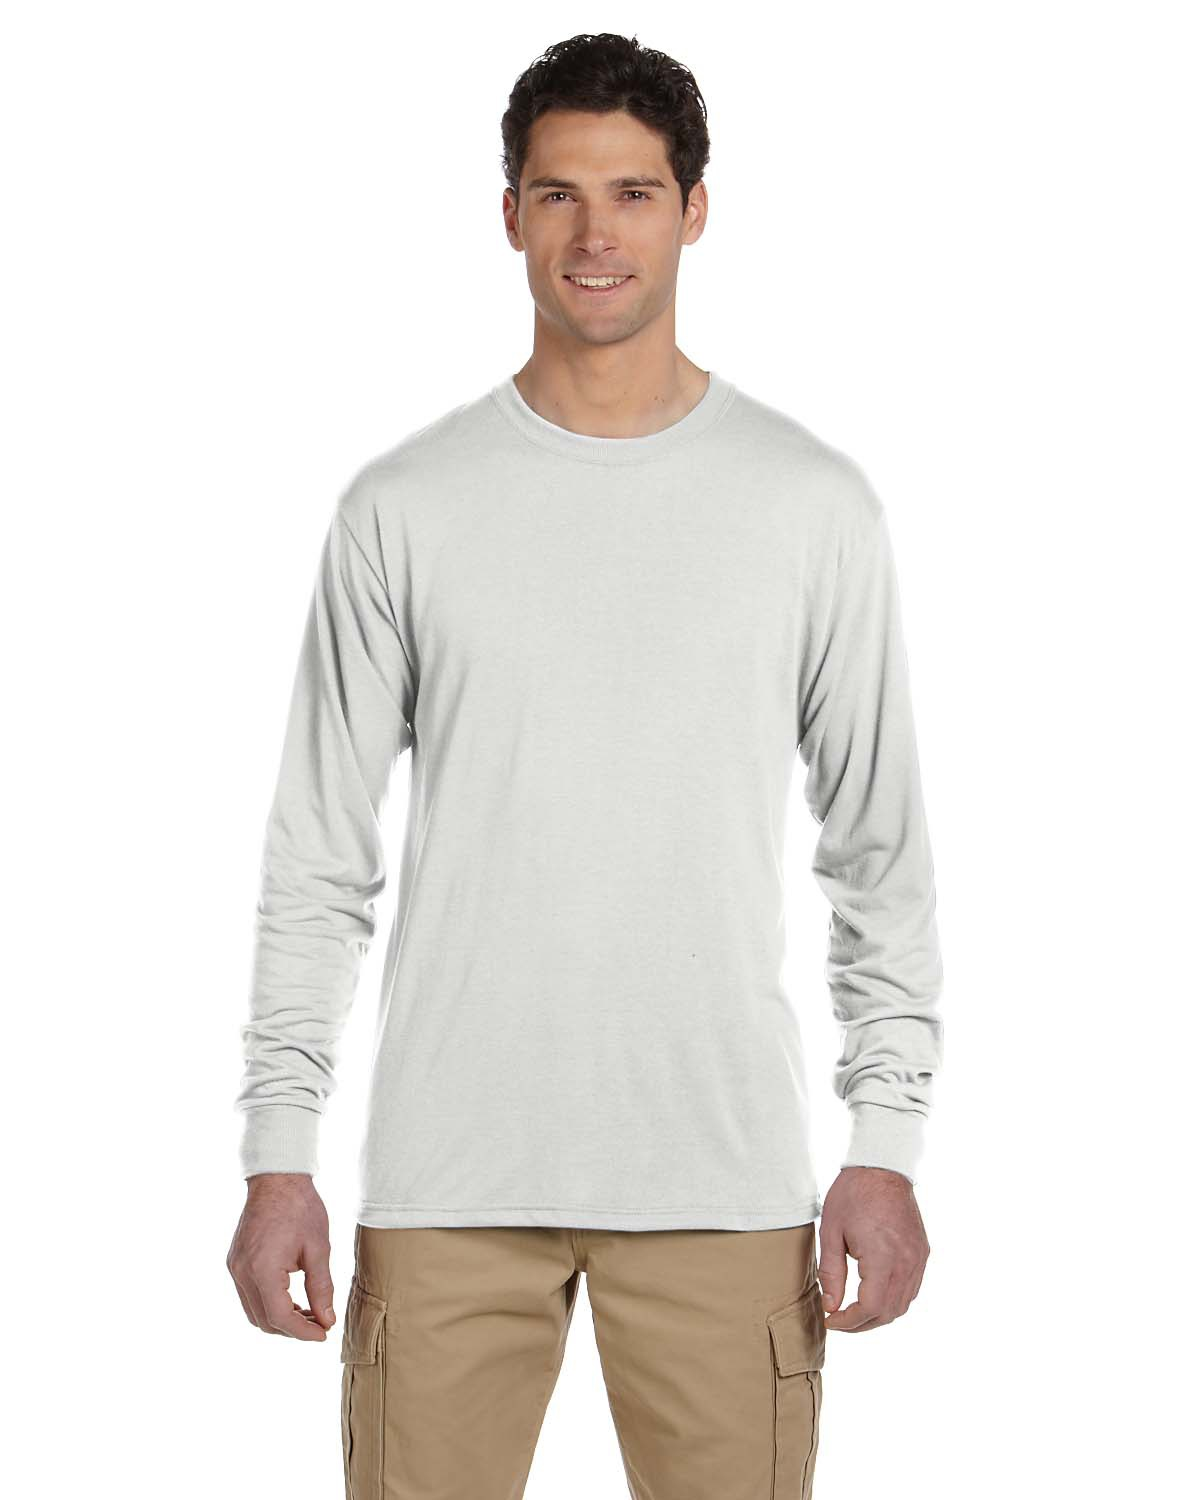 Adult 5.3 oz. DRI-POWER® SPORT Long-Sleeve T-Shirt